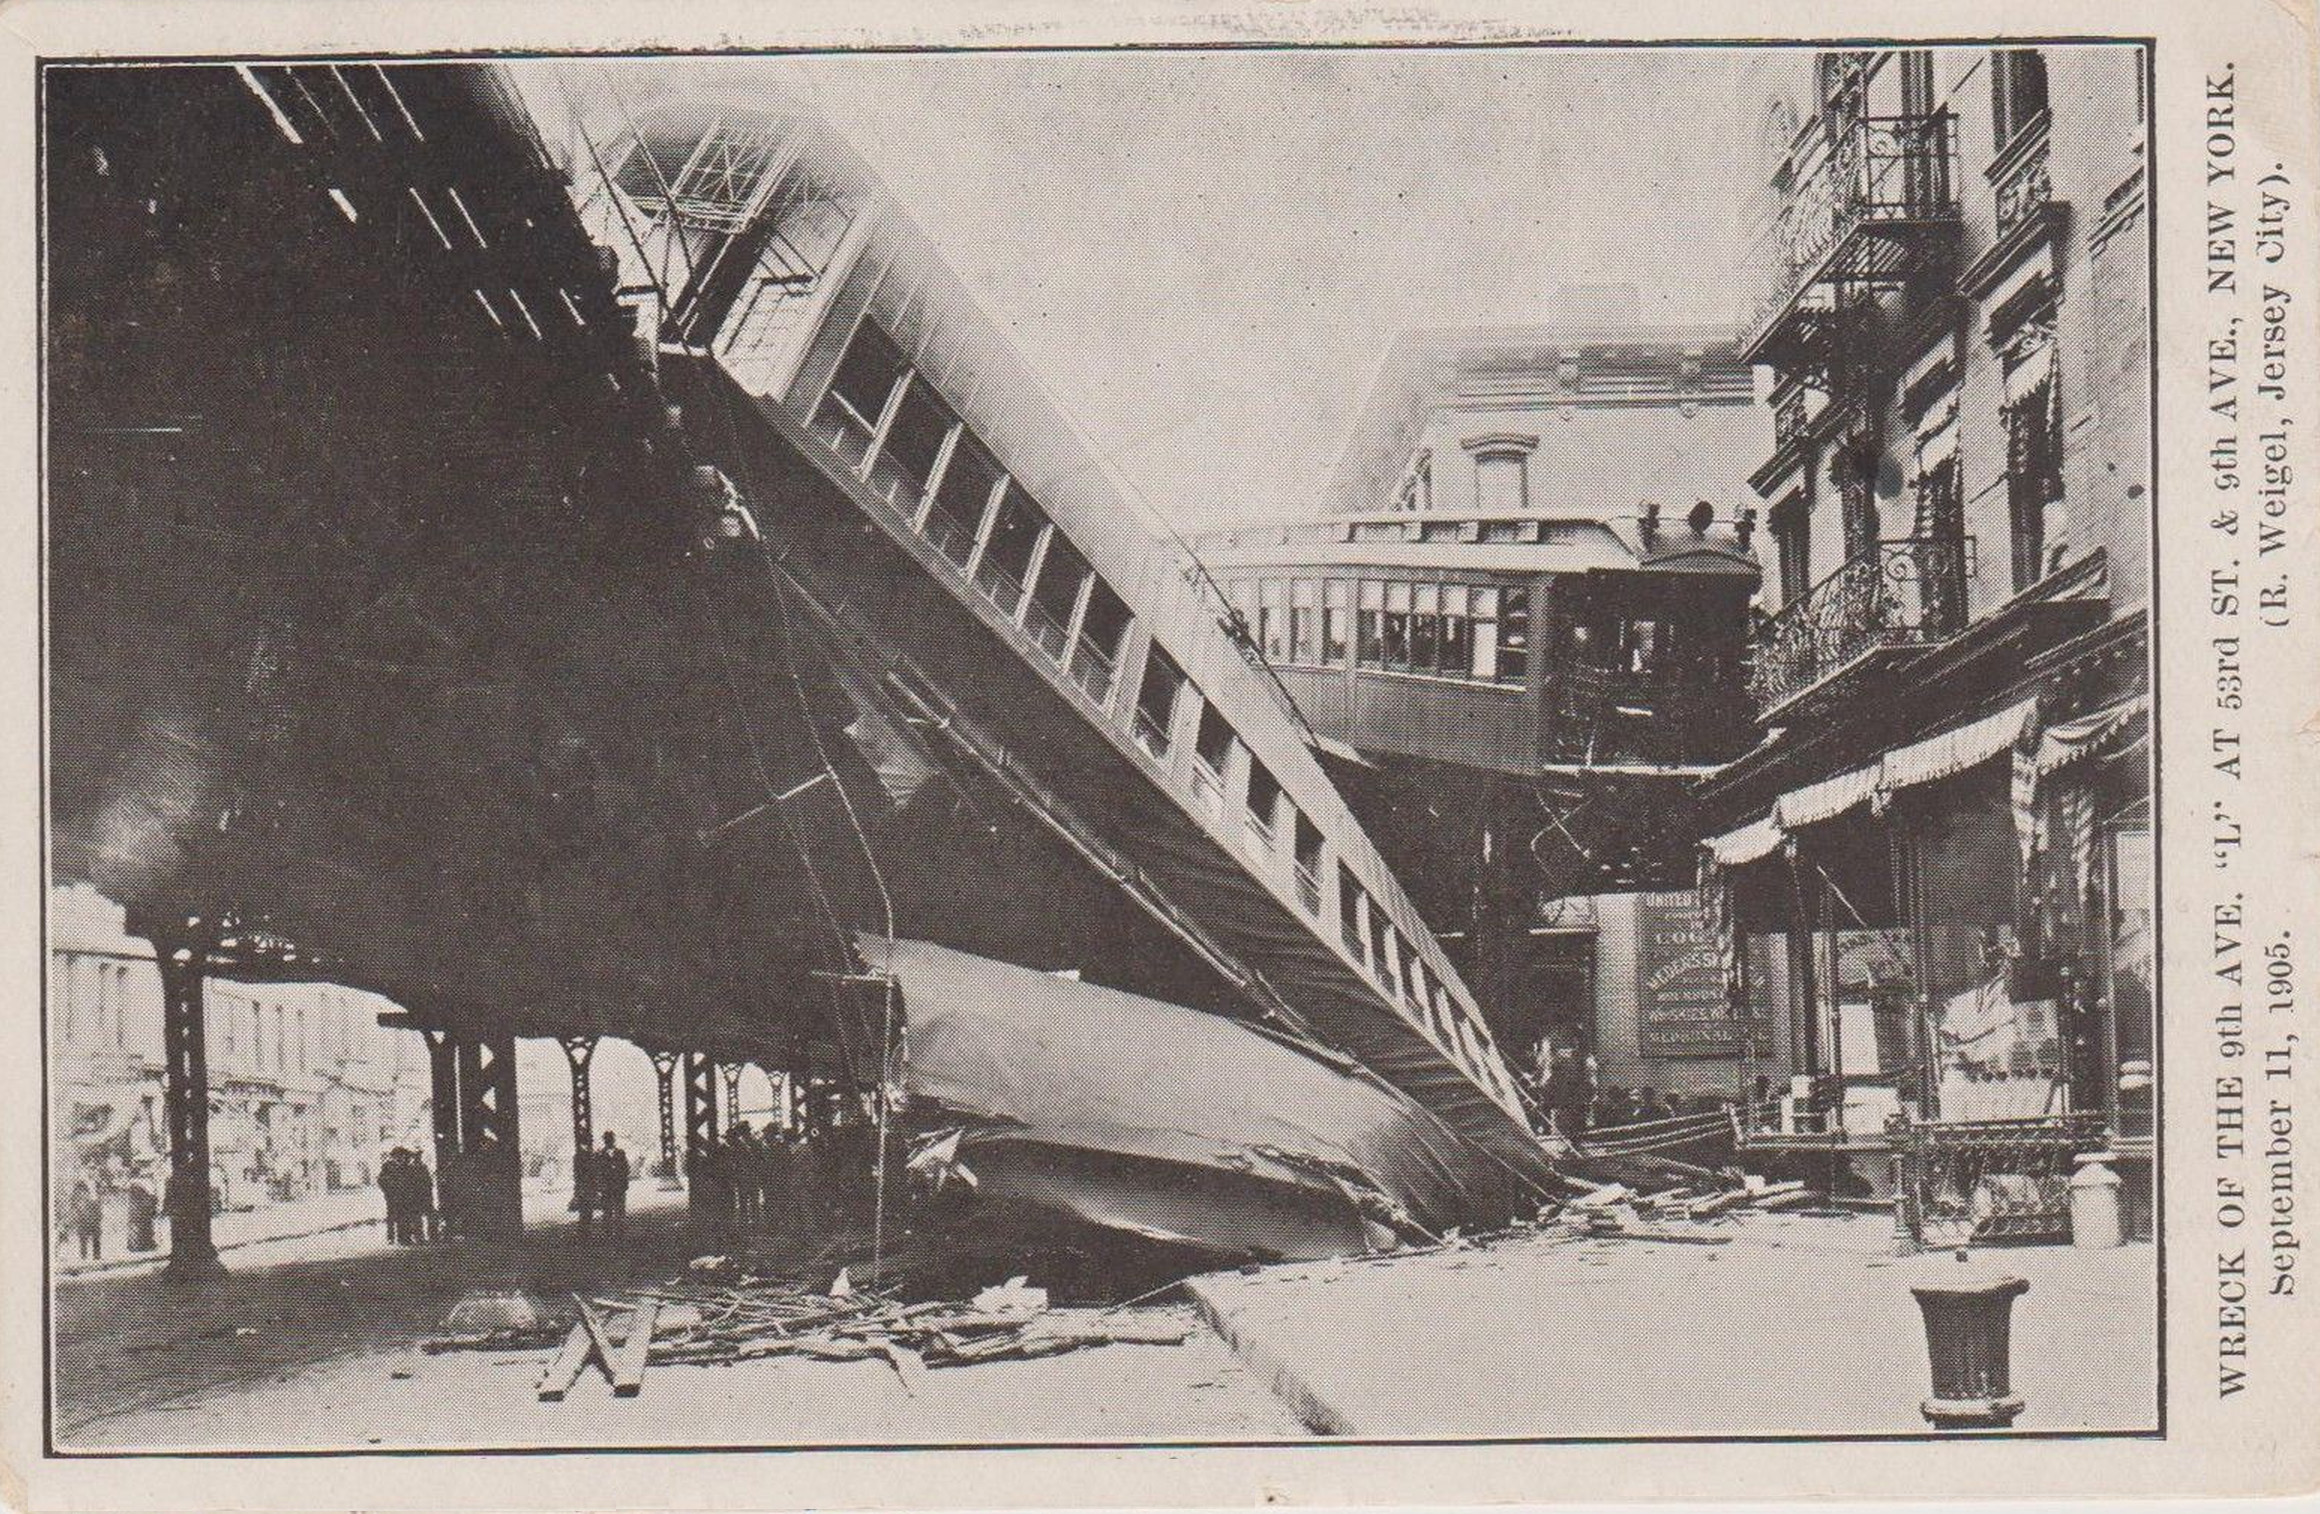 The Ninth Avenue Elevated Train Crash Of 1905